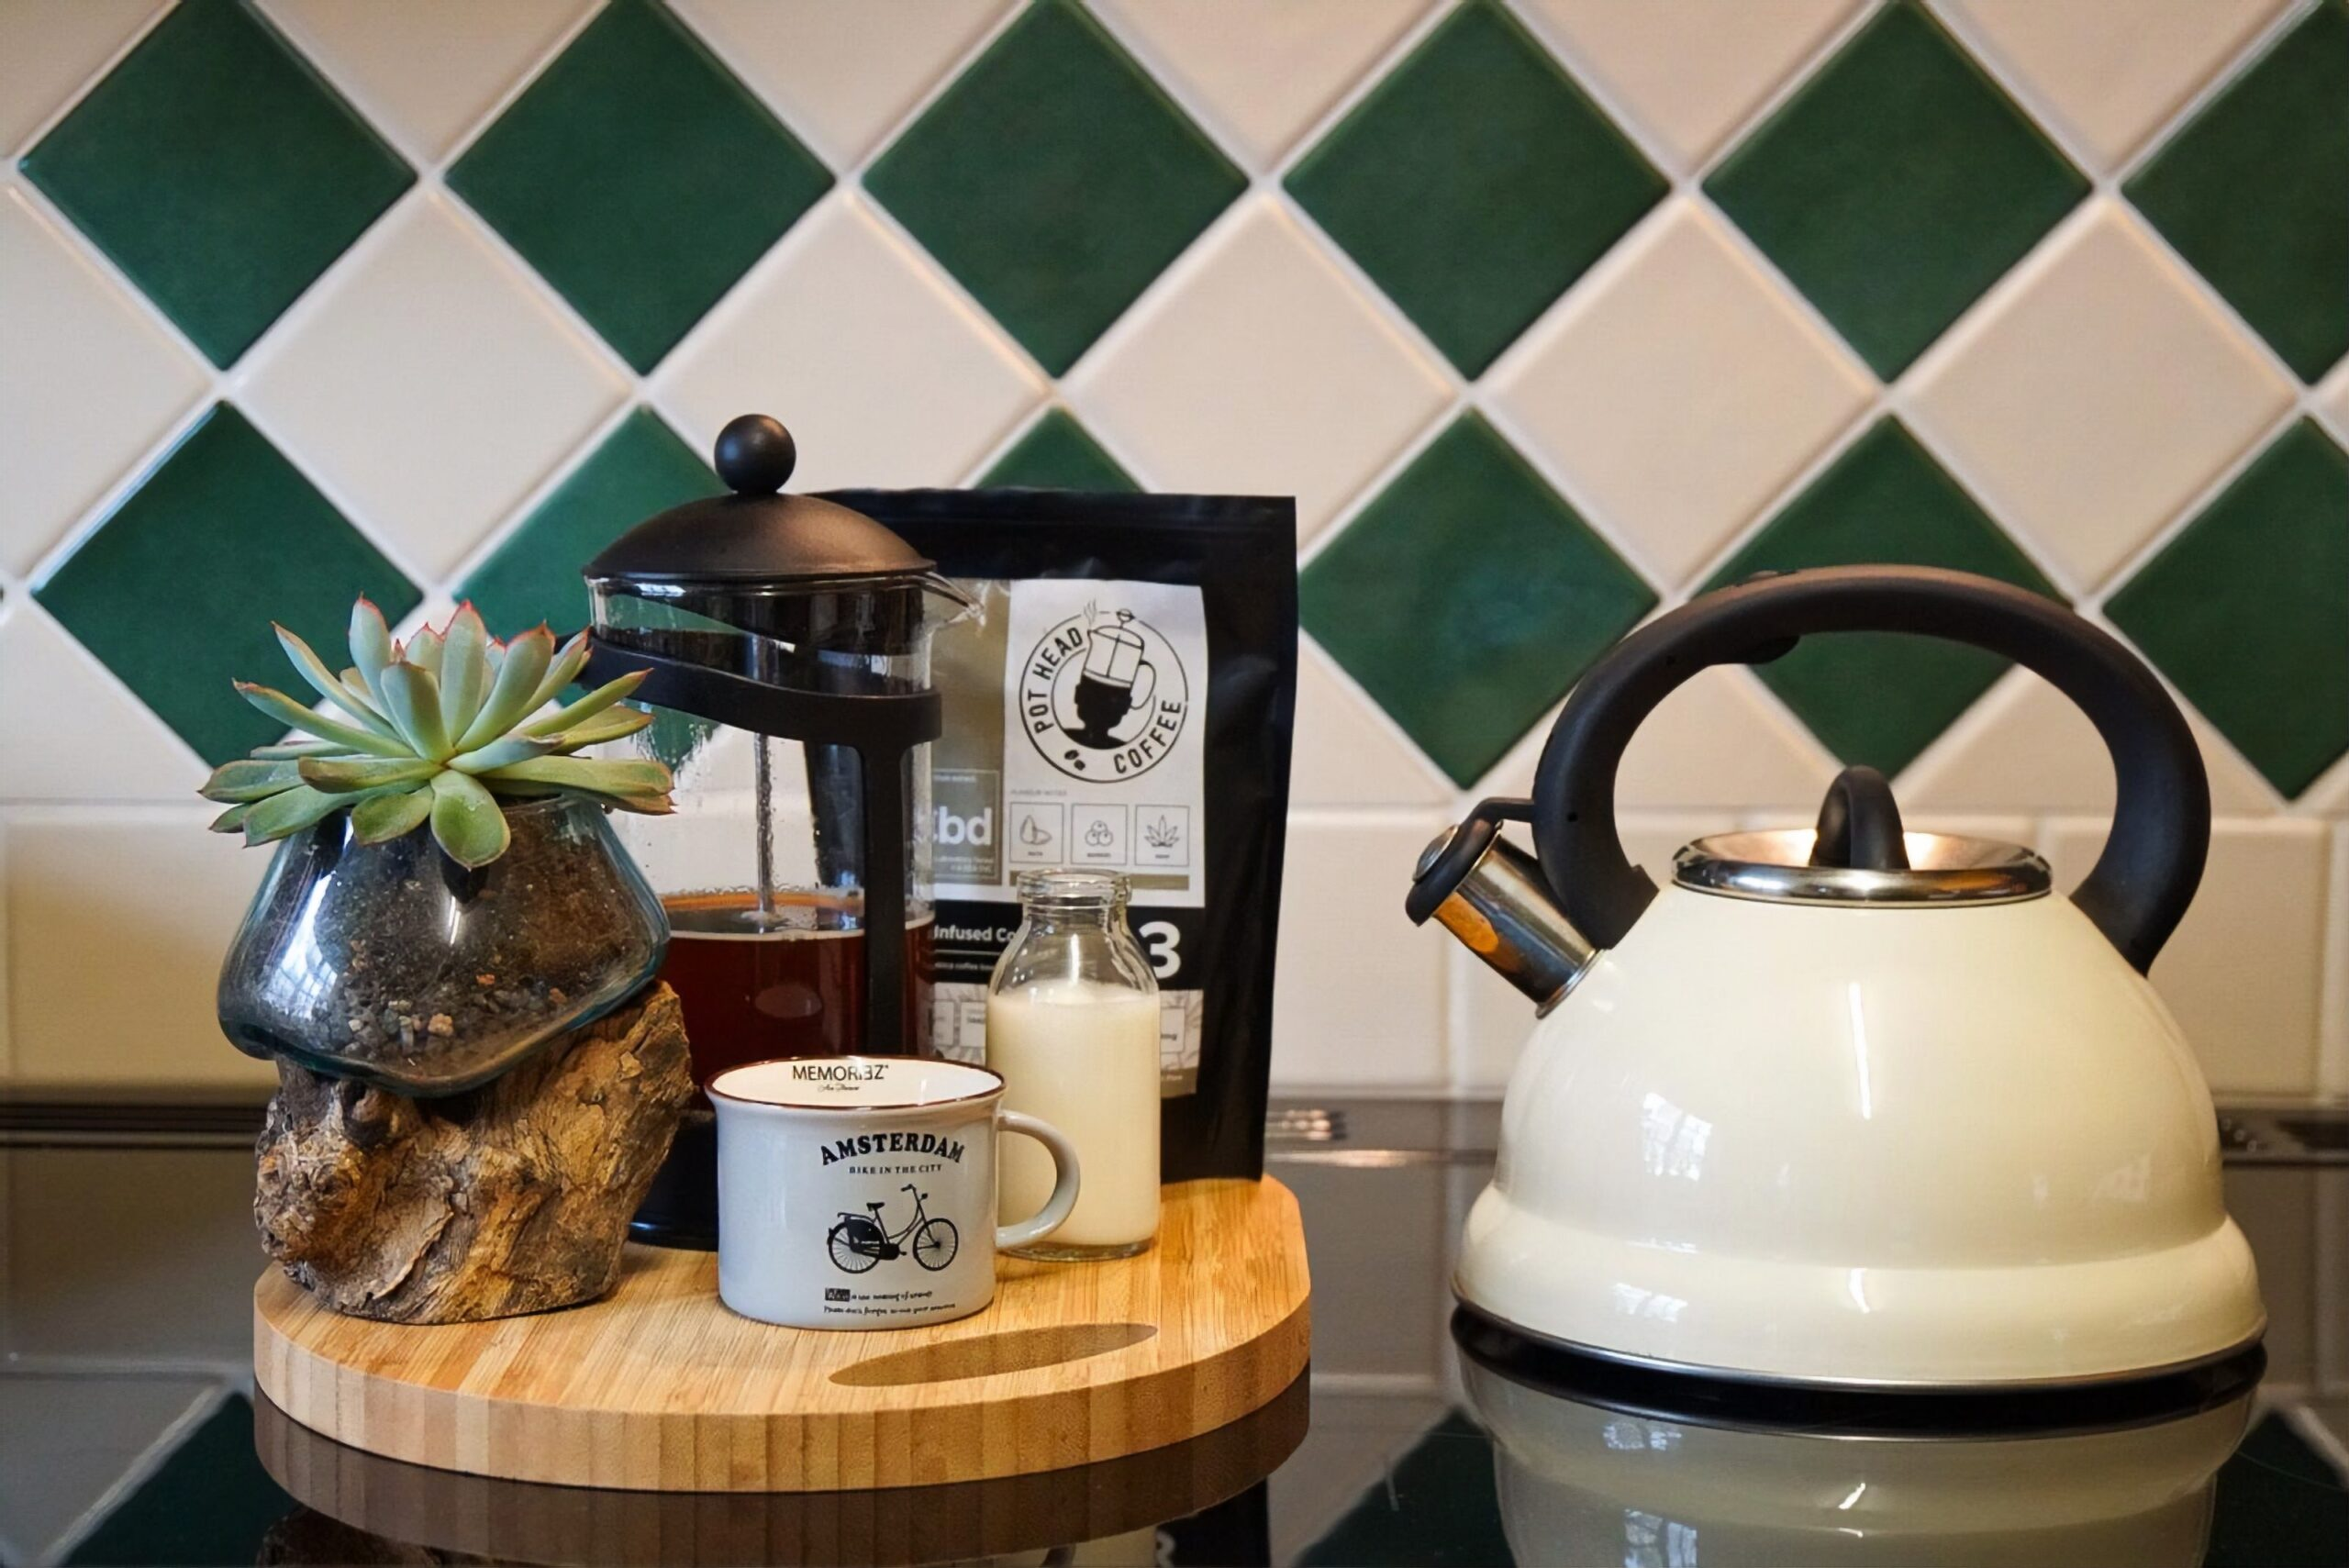 Pot and french press